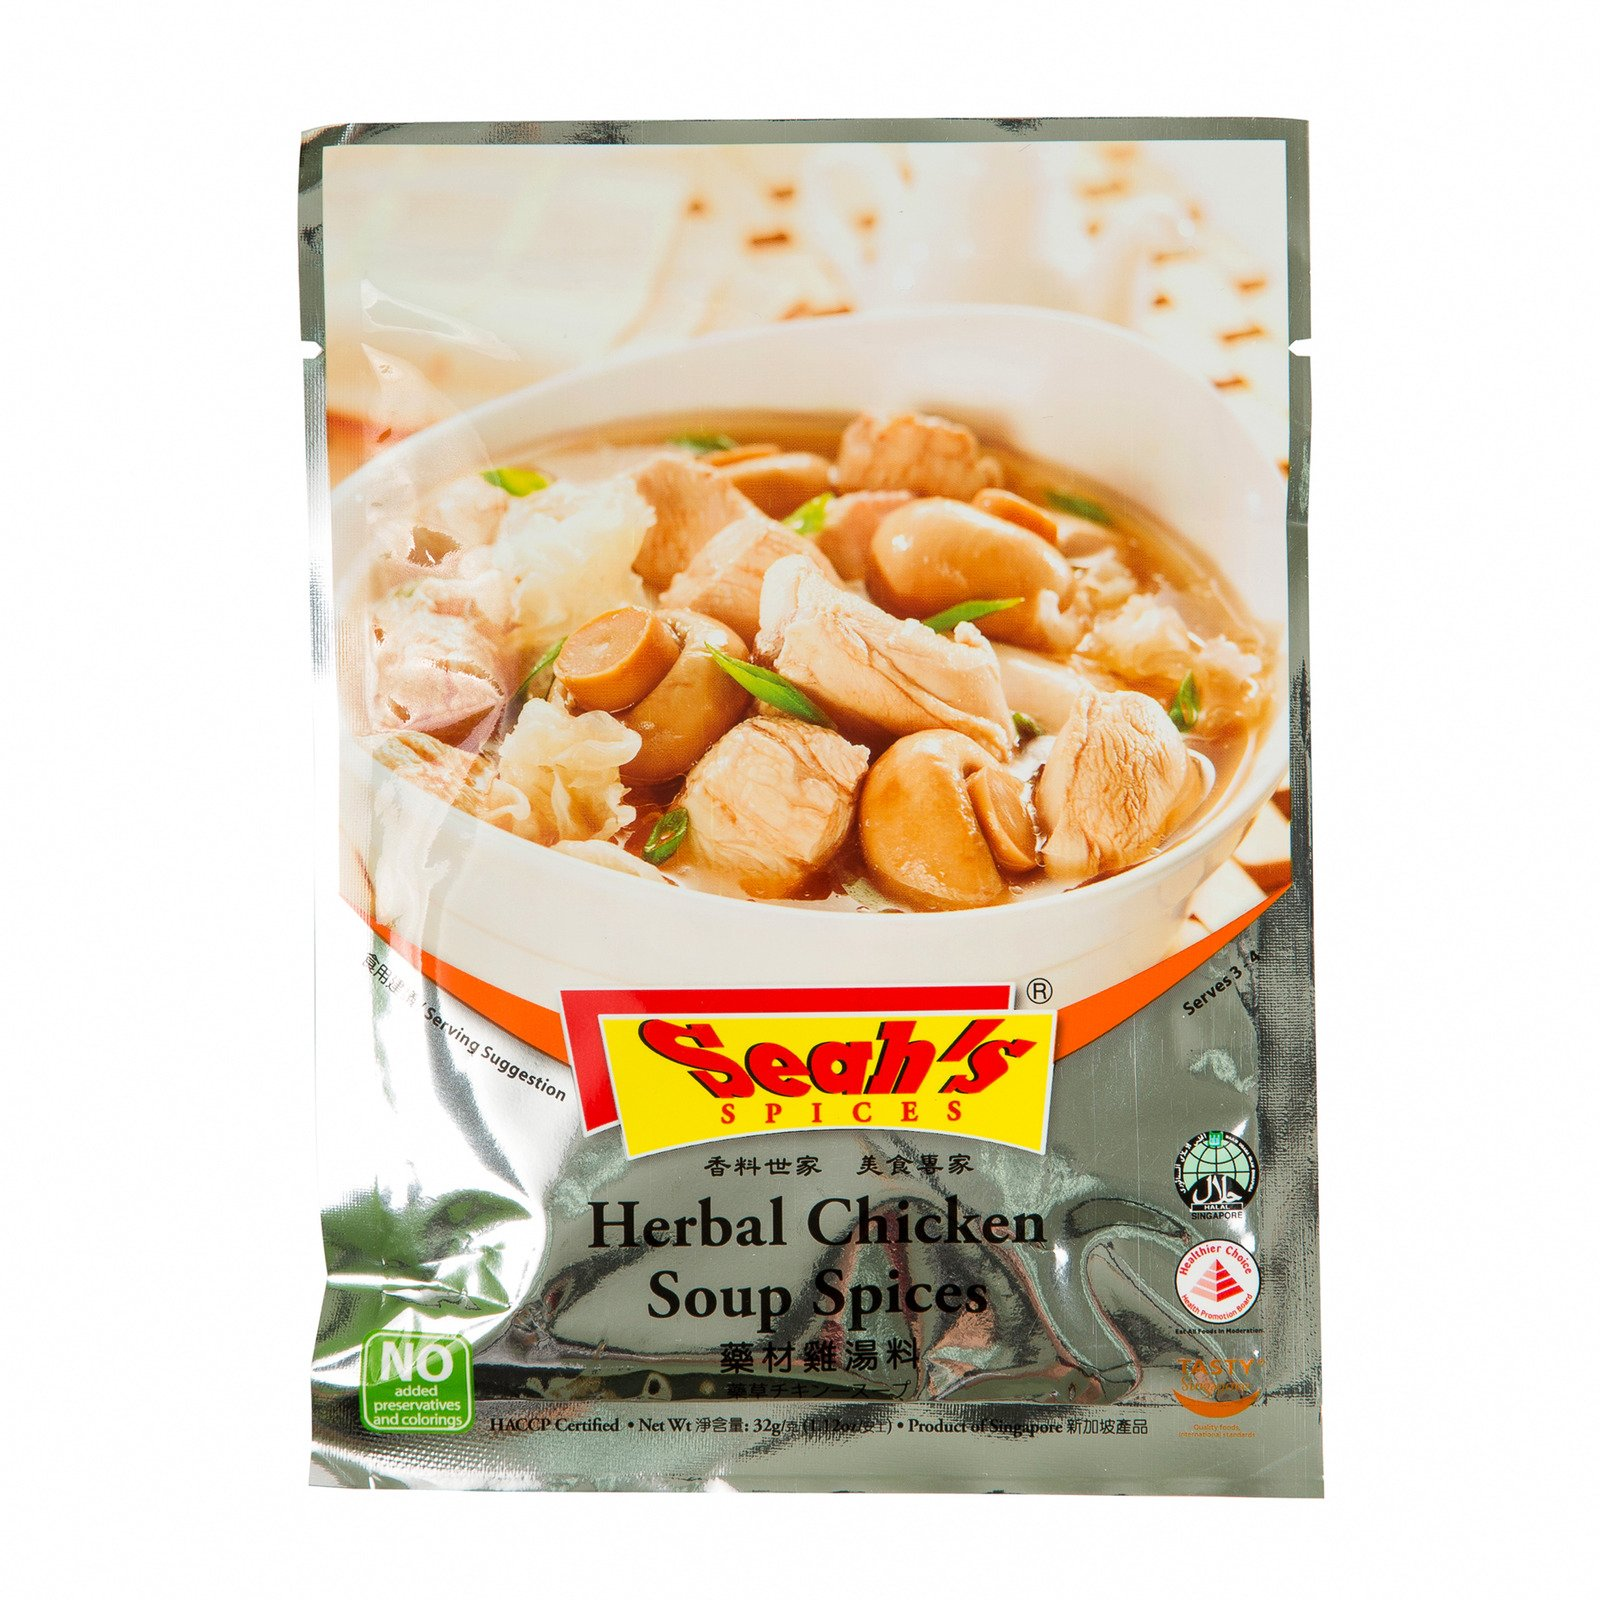 Seah's Herbal Chicken Soup Spices 32g